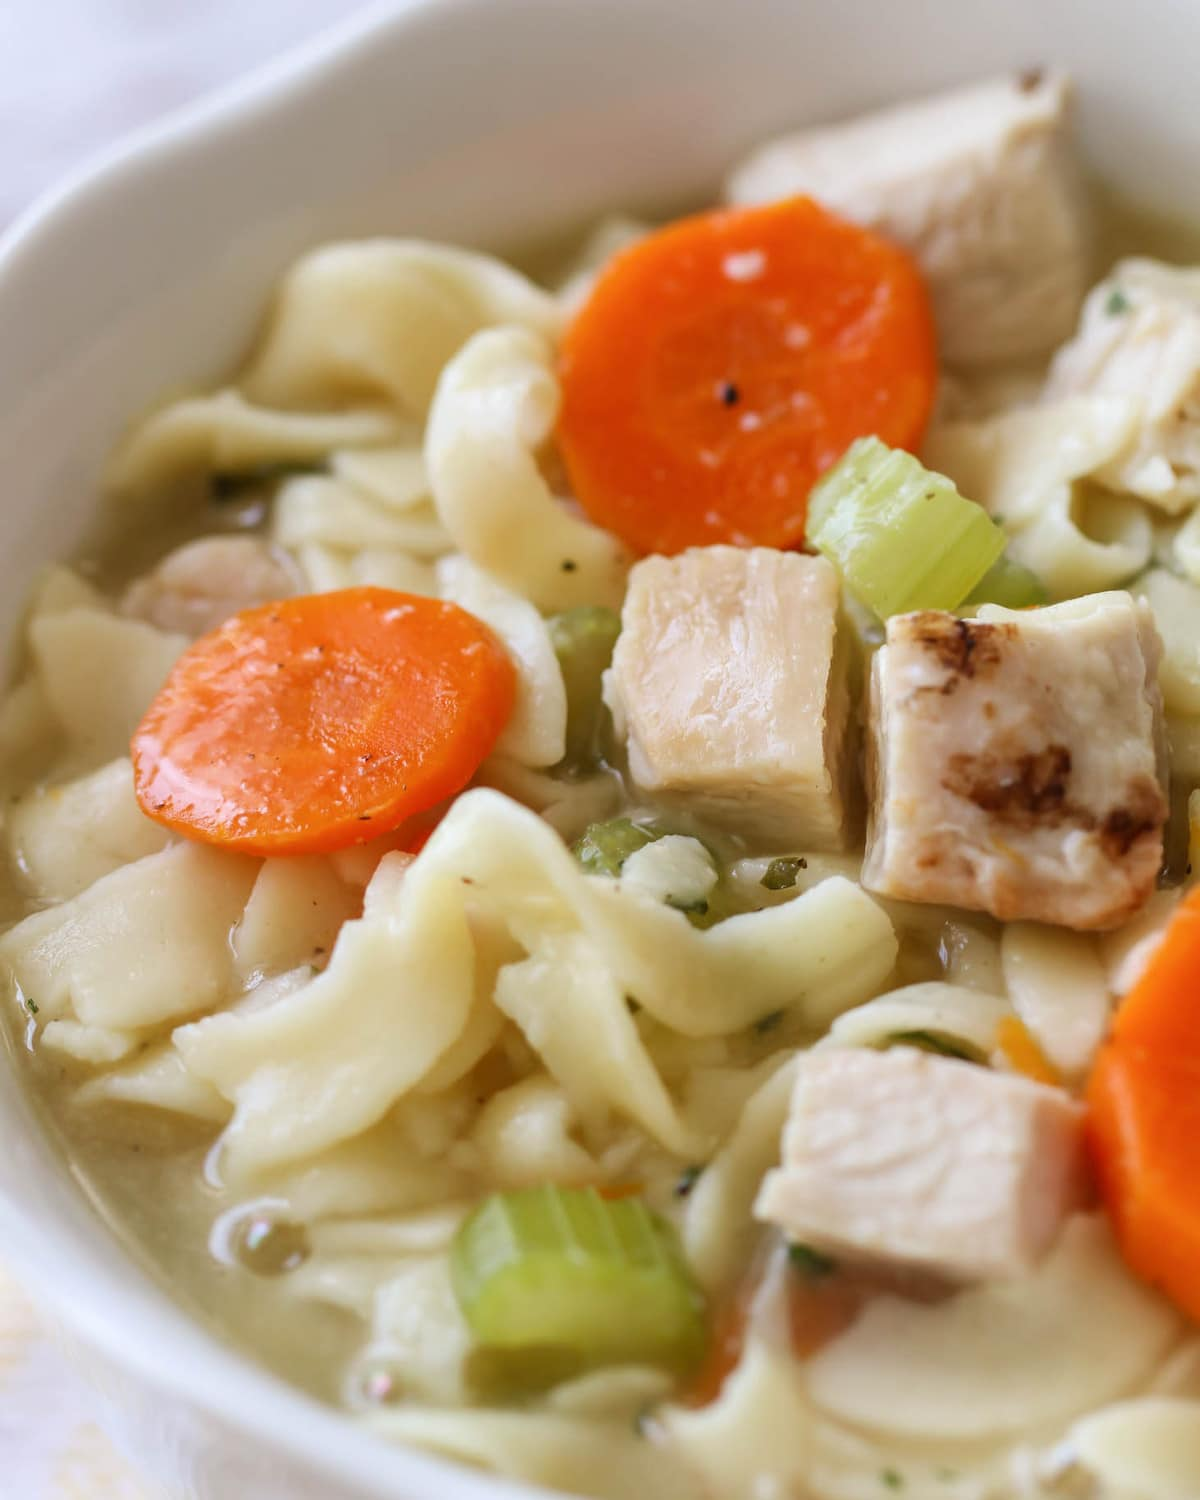 Homemade Chicken Noodle Soup recipe close up in bowl